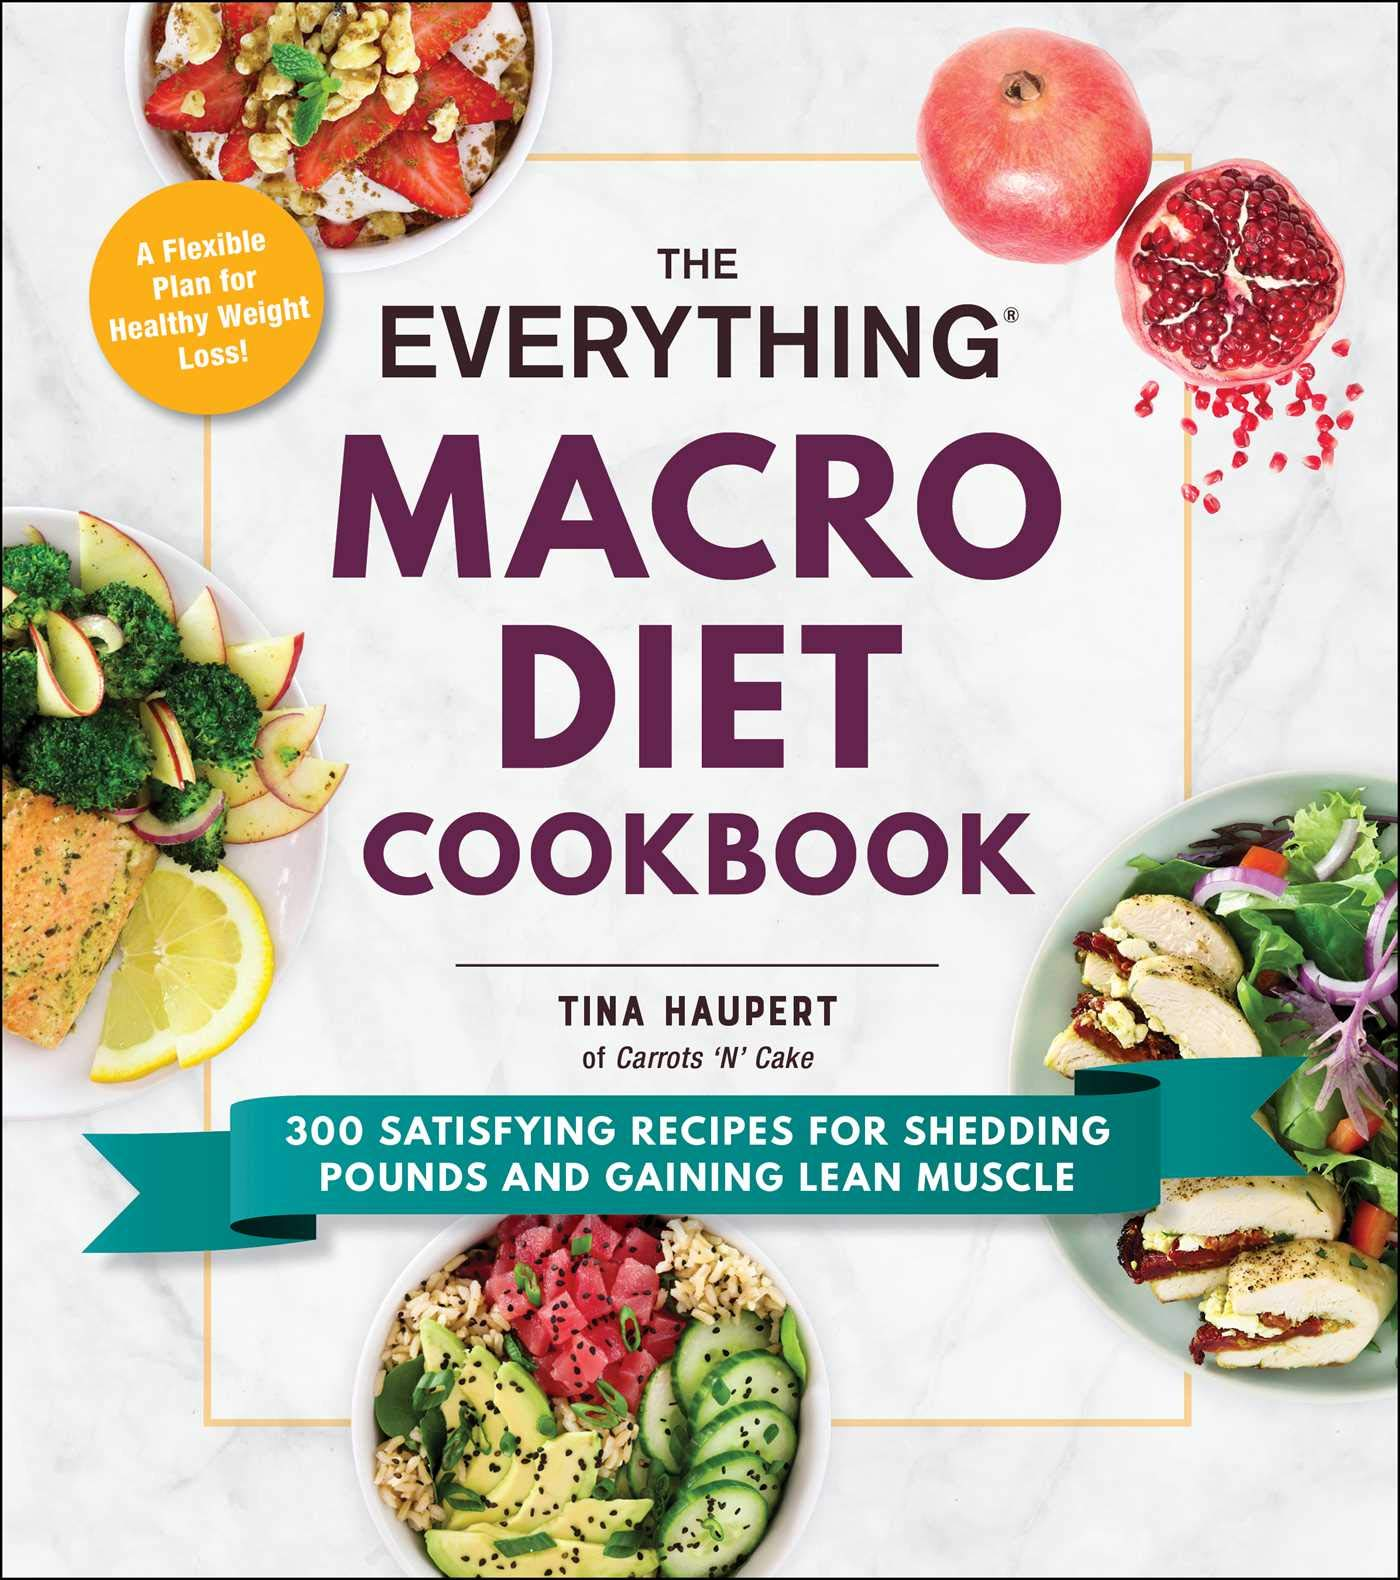 The Everything Macro Diet Cookbook: 300 Satisfying Recipes for Shedding Pounds and Gaining Lean Muscle 1